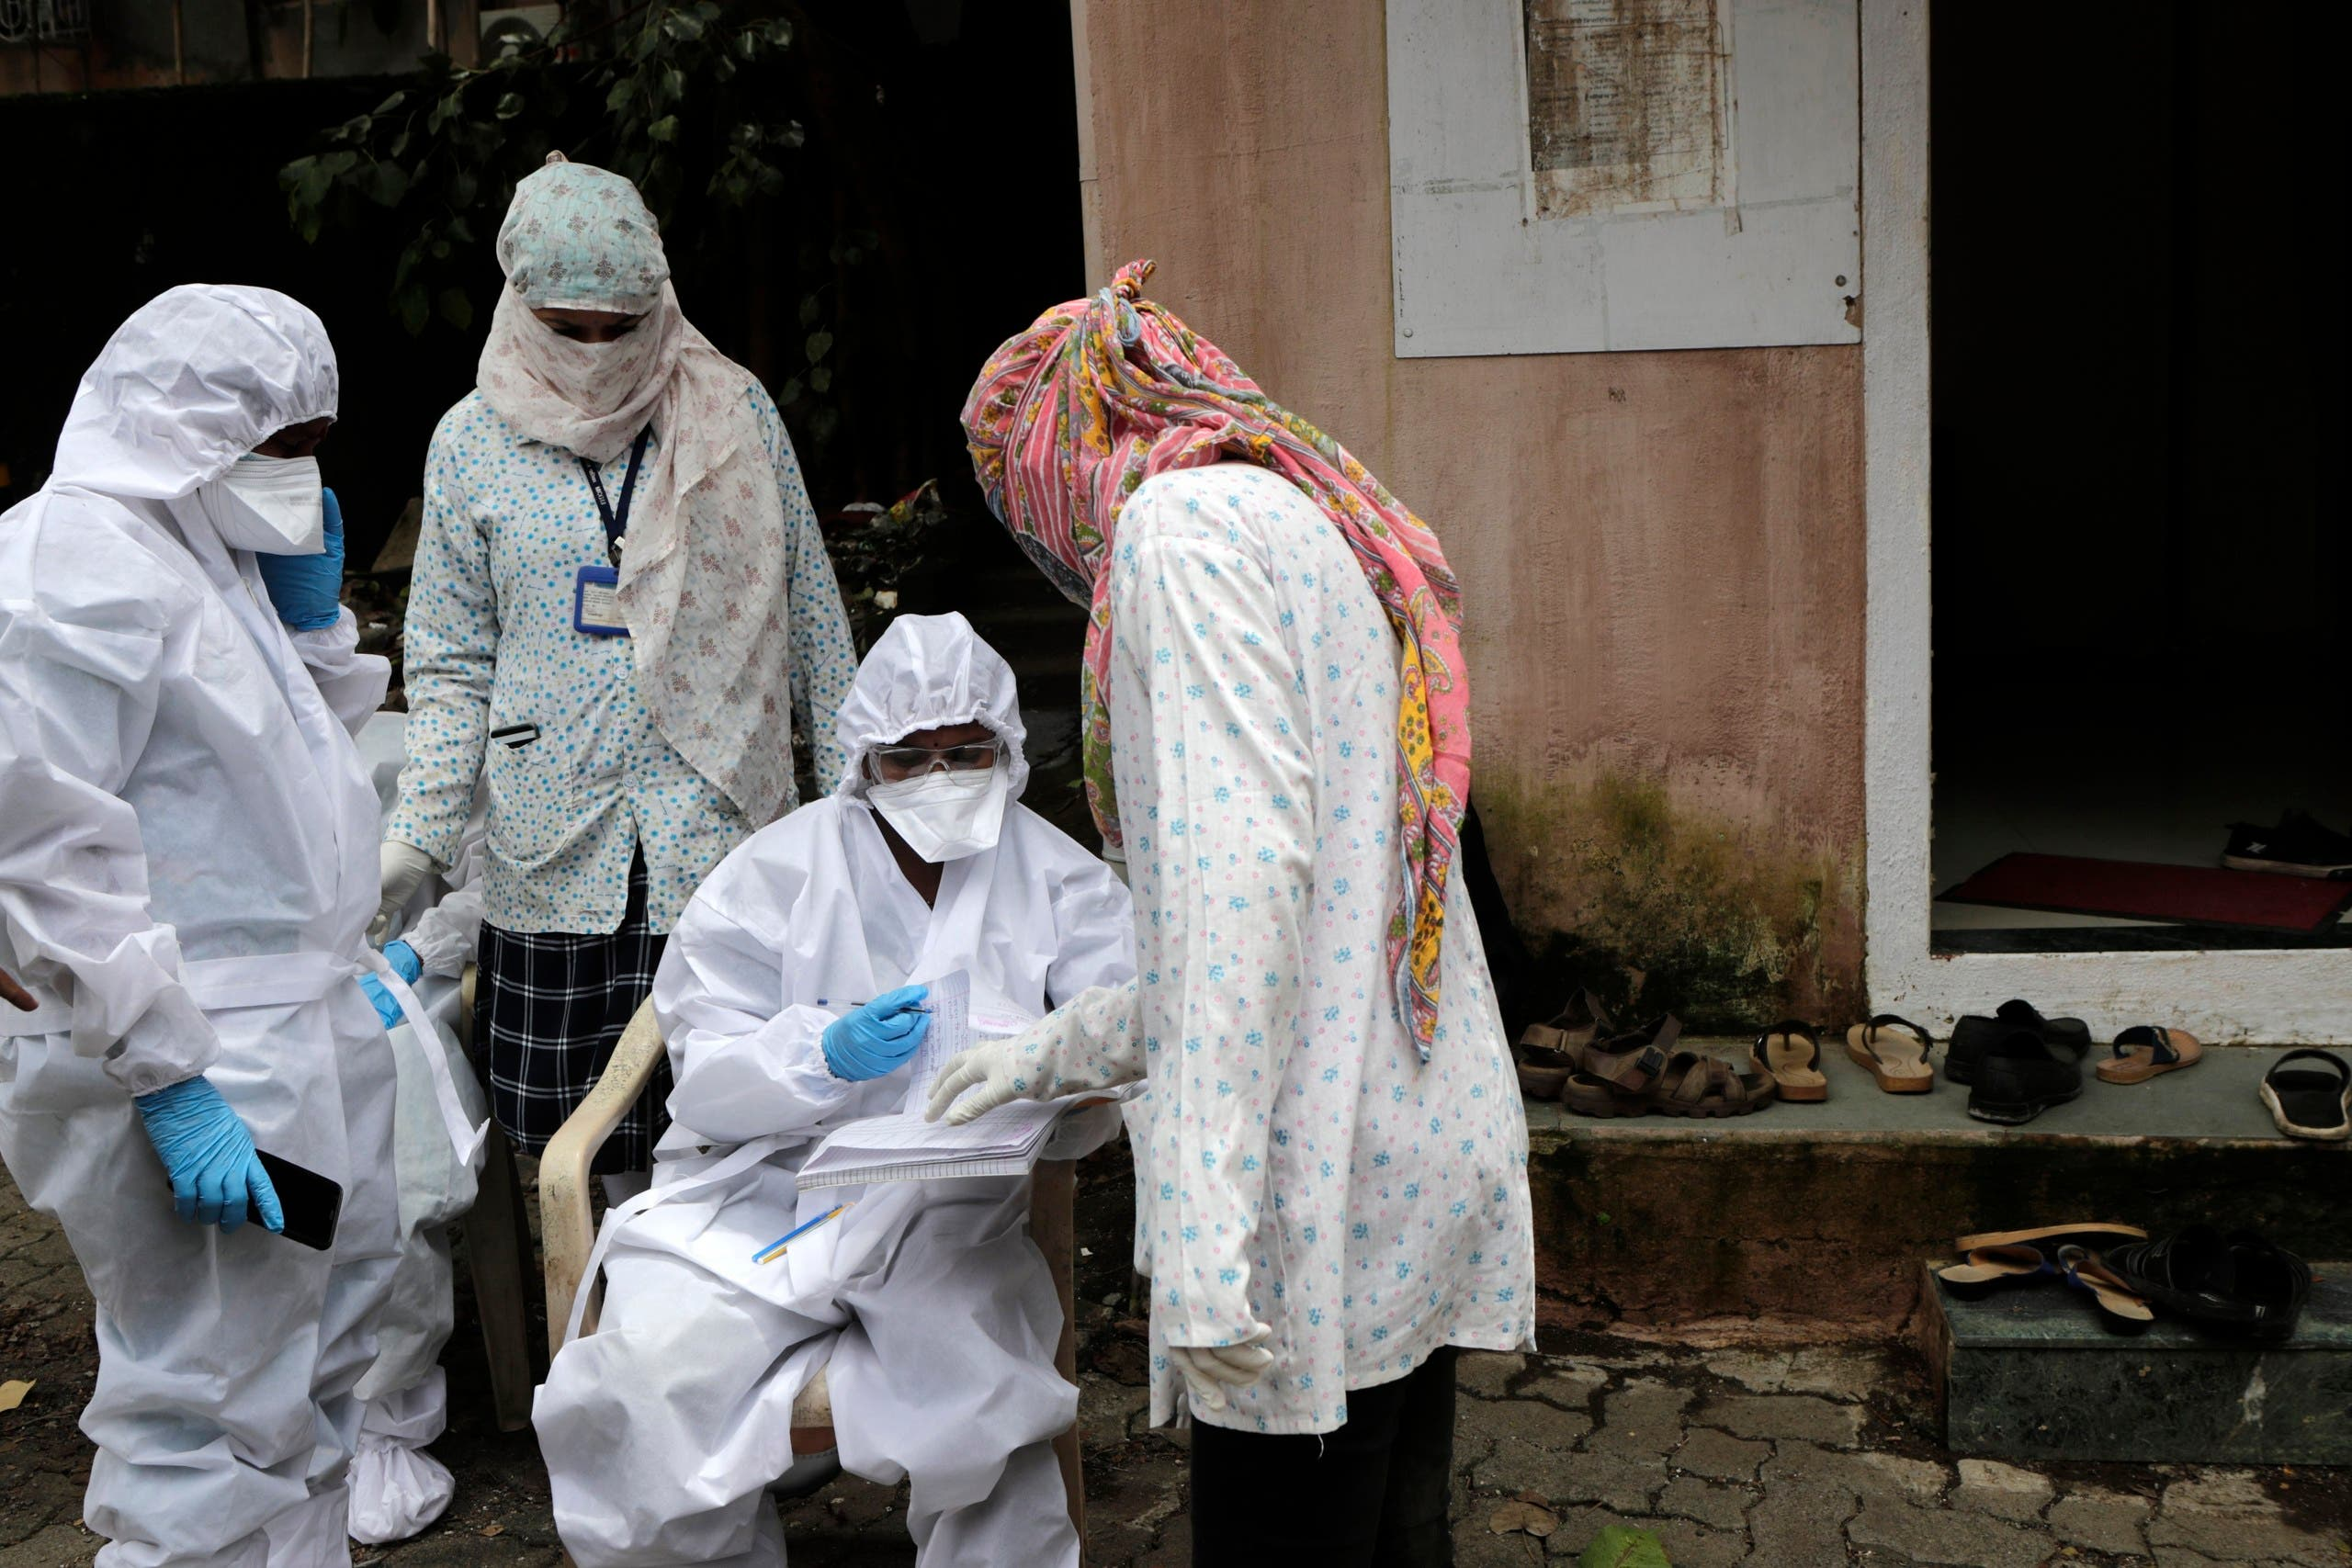 A health worker waits to take nasal swab samples to test for COVID-19 at a medical camp in Mumbai. (AP)